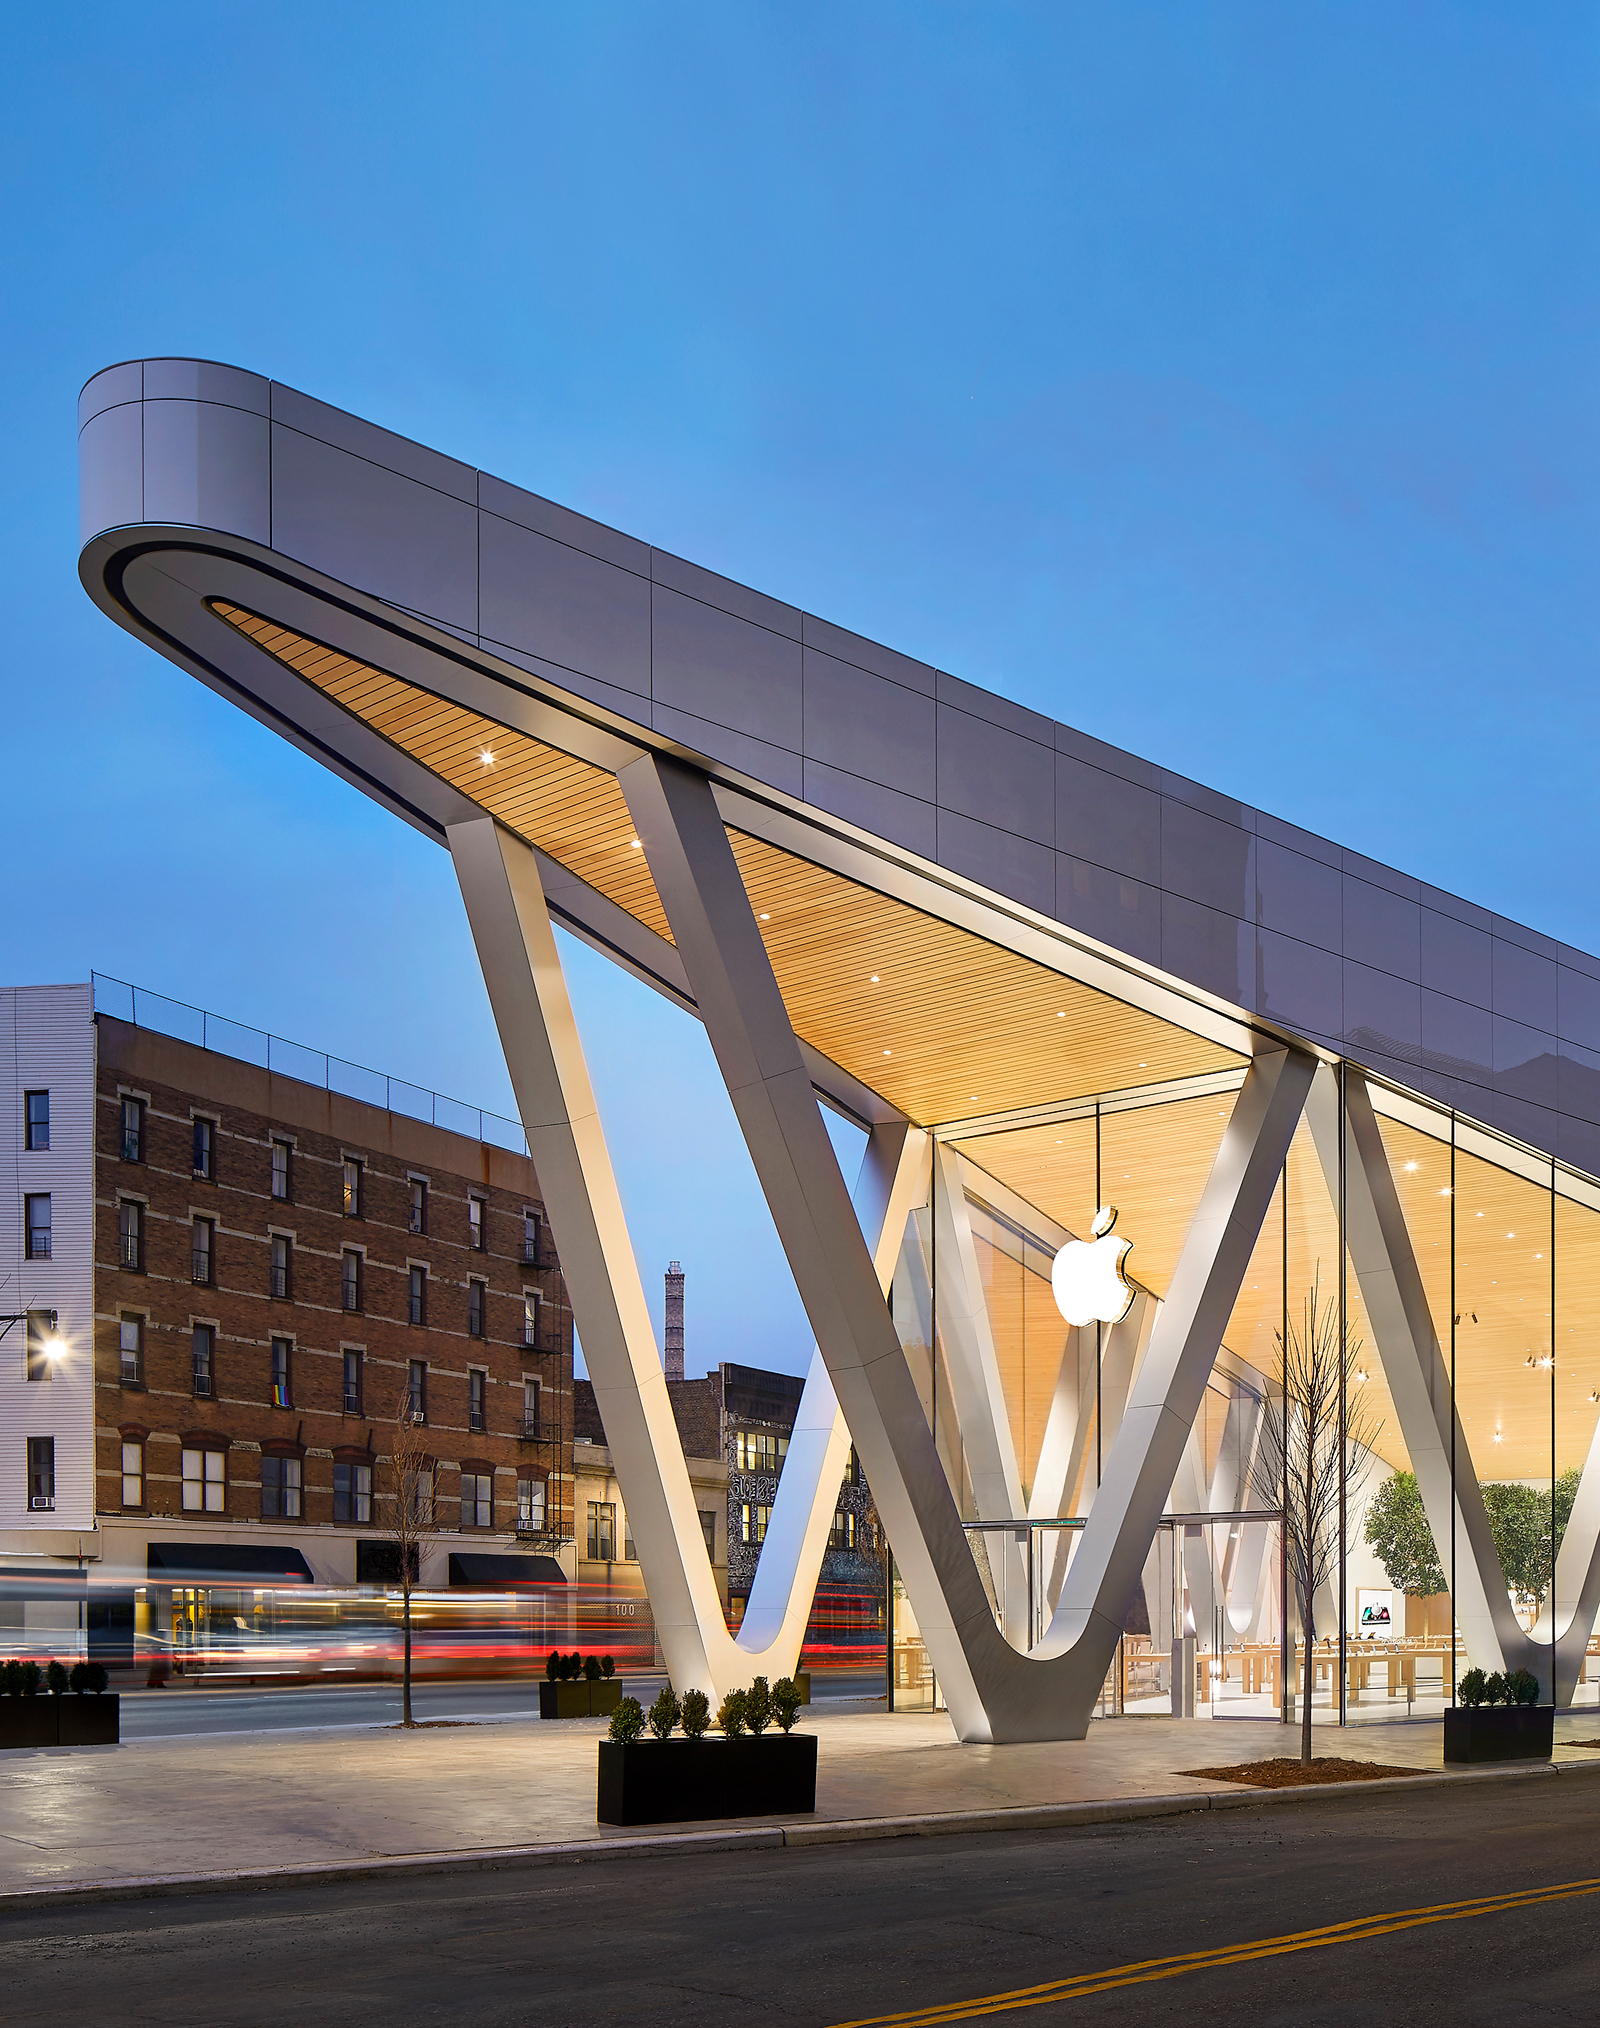 Apple Downtown Brooklyn è un esempio dell'architettura e del design altamente innovativi dei nostri store